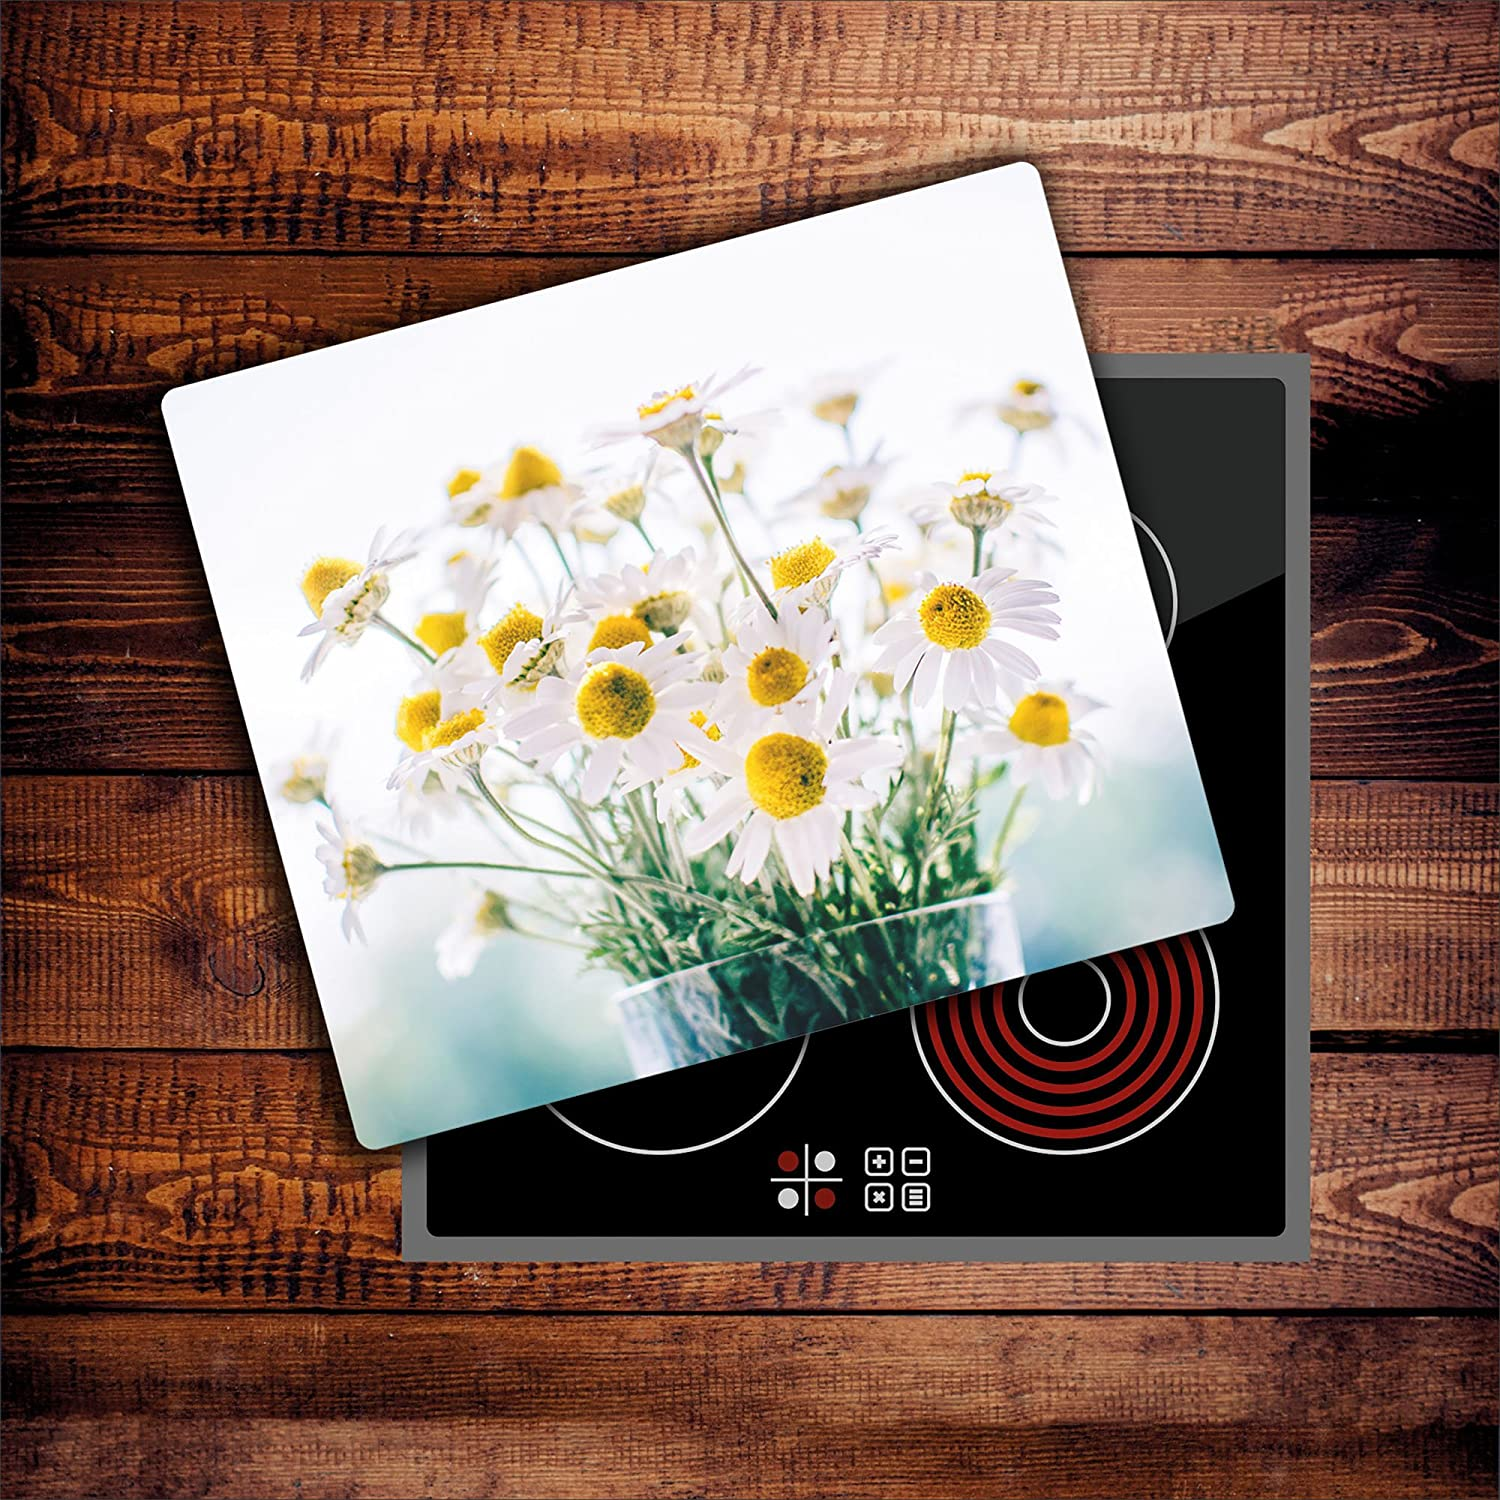 DAMU | Hob Covers for Induction Ceramic Hob Electric Cookers 60x52 cm Hardened Glass Splashback For Kitchen Stove Protector Hob Cover Chopping Board Nature